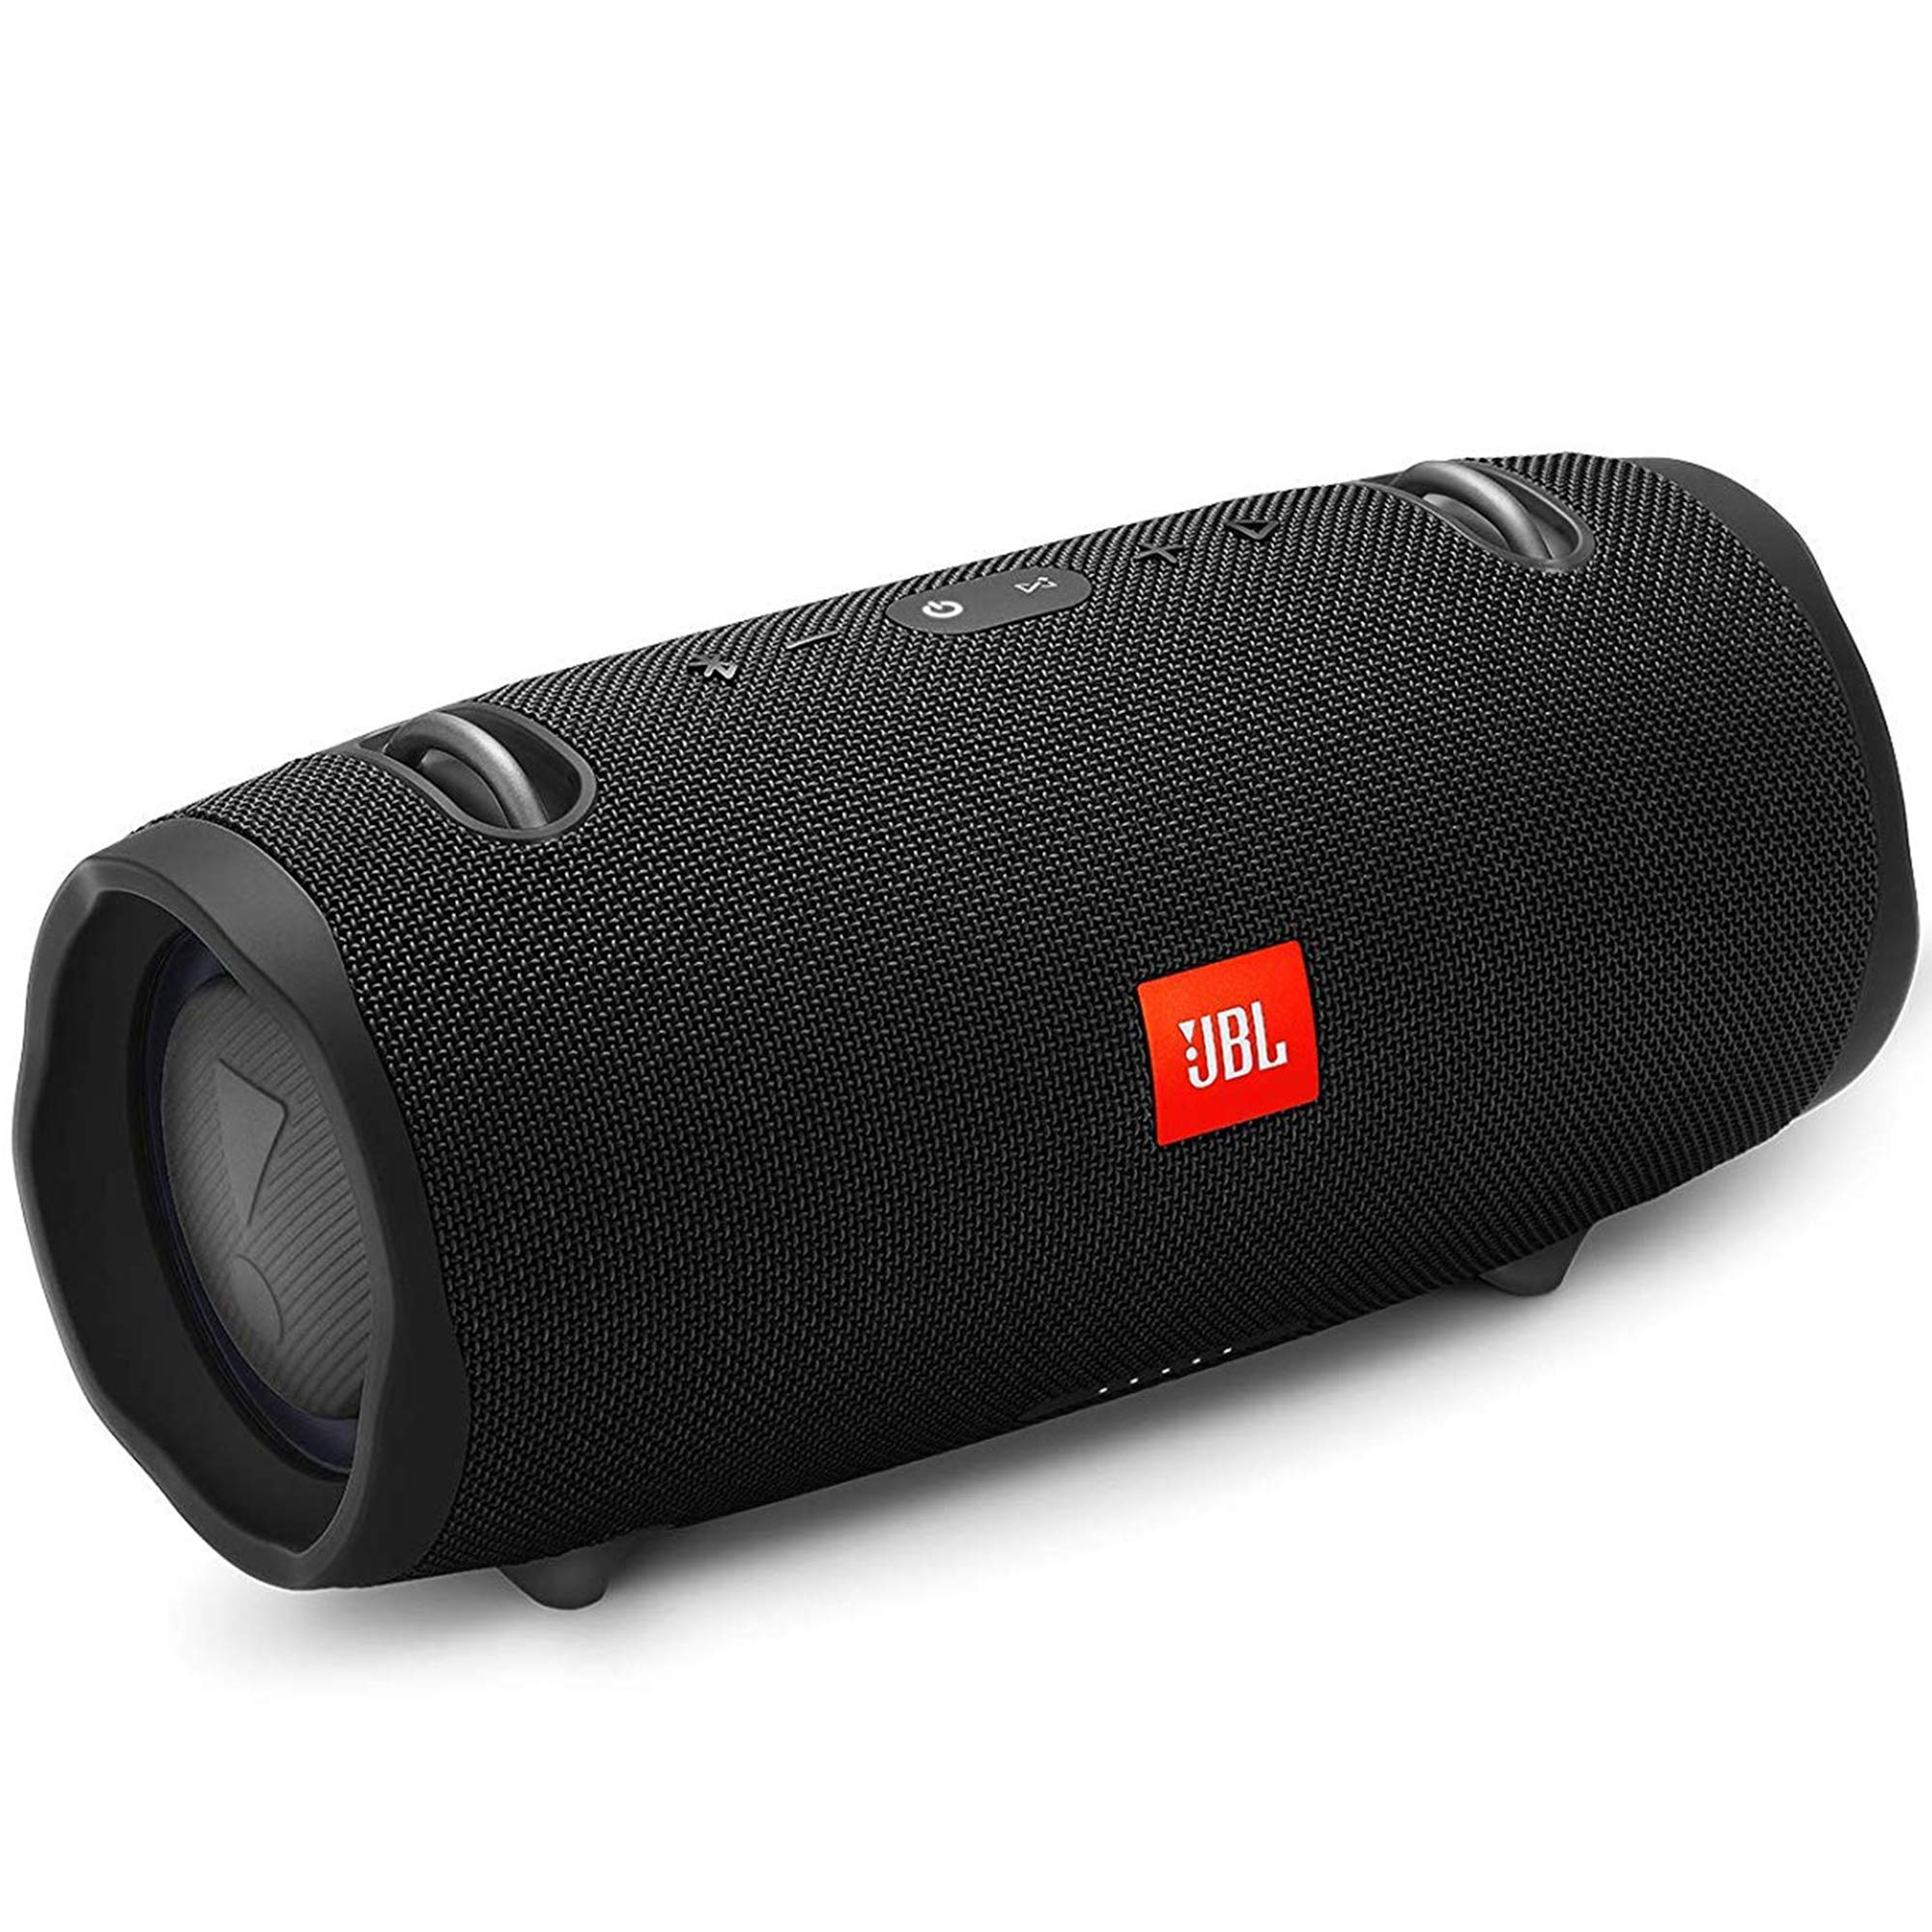 JBL Xtreme 2 Waterproof portable Bluetooth speaker - Black by JBL